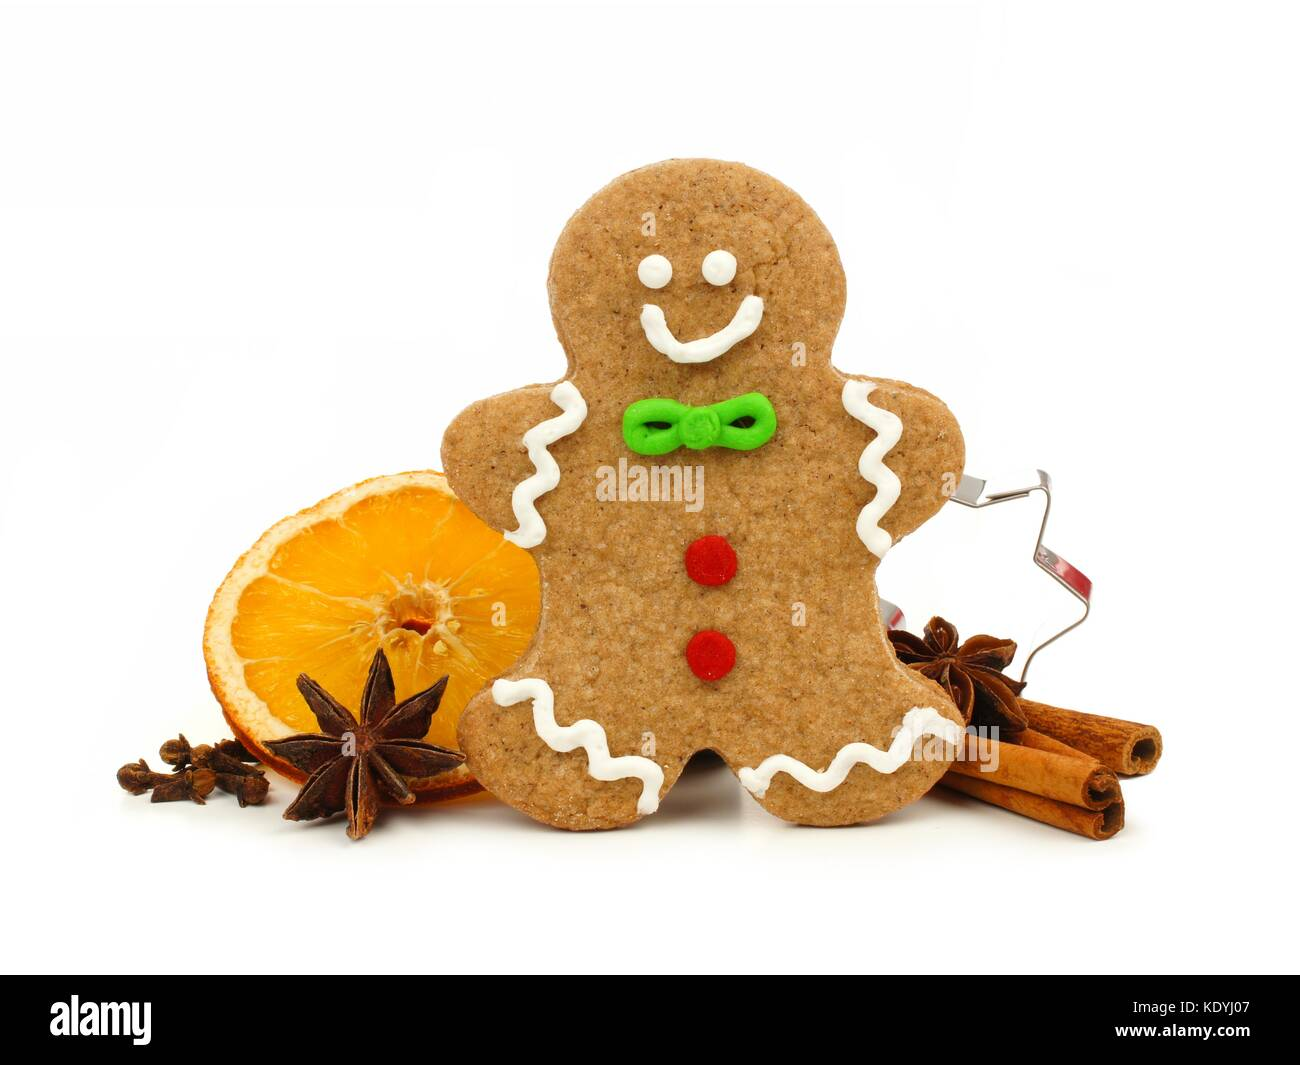 Christmas gingerbread man with cookie cutter and holiday spices isolated on a white background Stock Photo